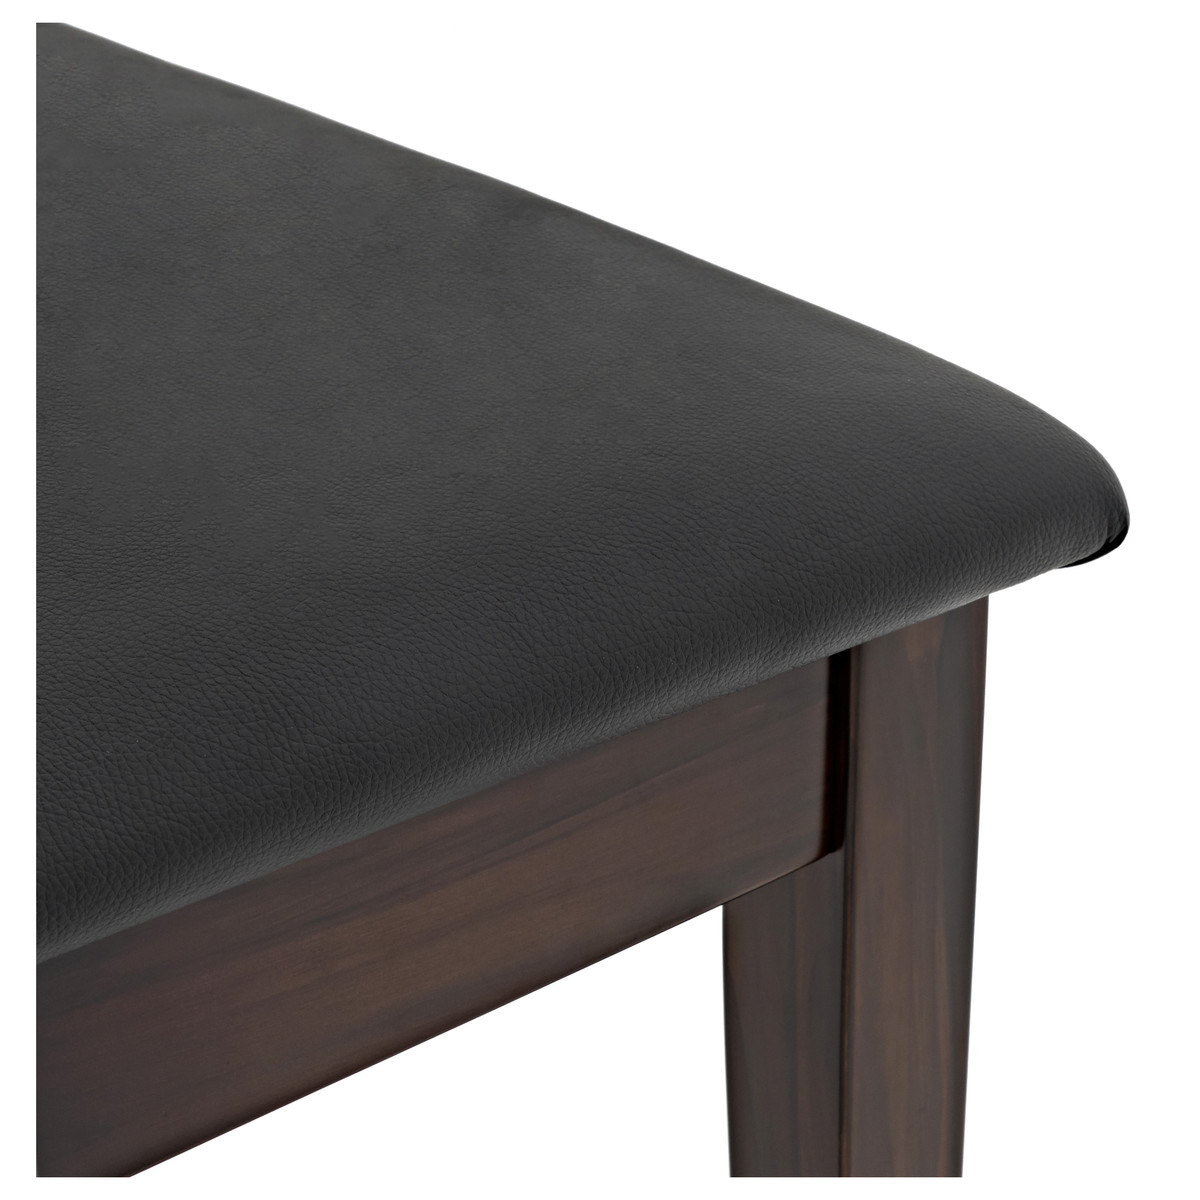 Piano Stool With Storage By Gear4music Rw At Gear4music Com